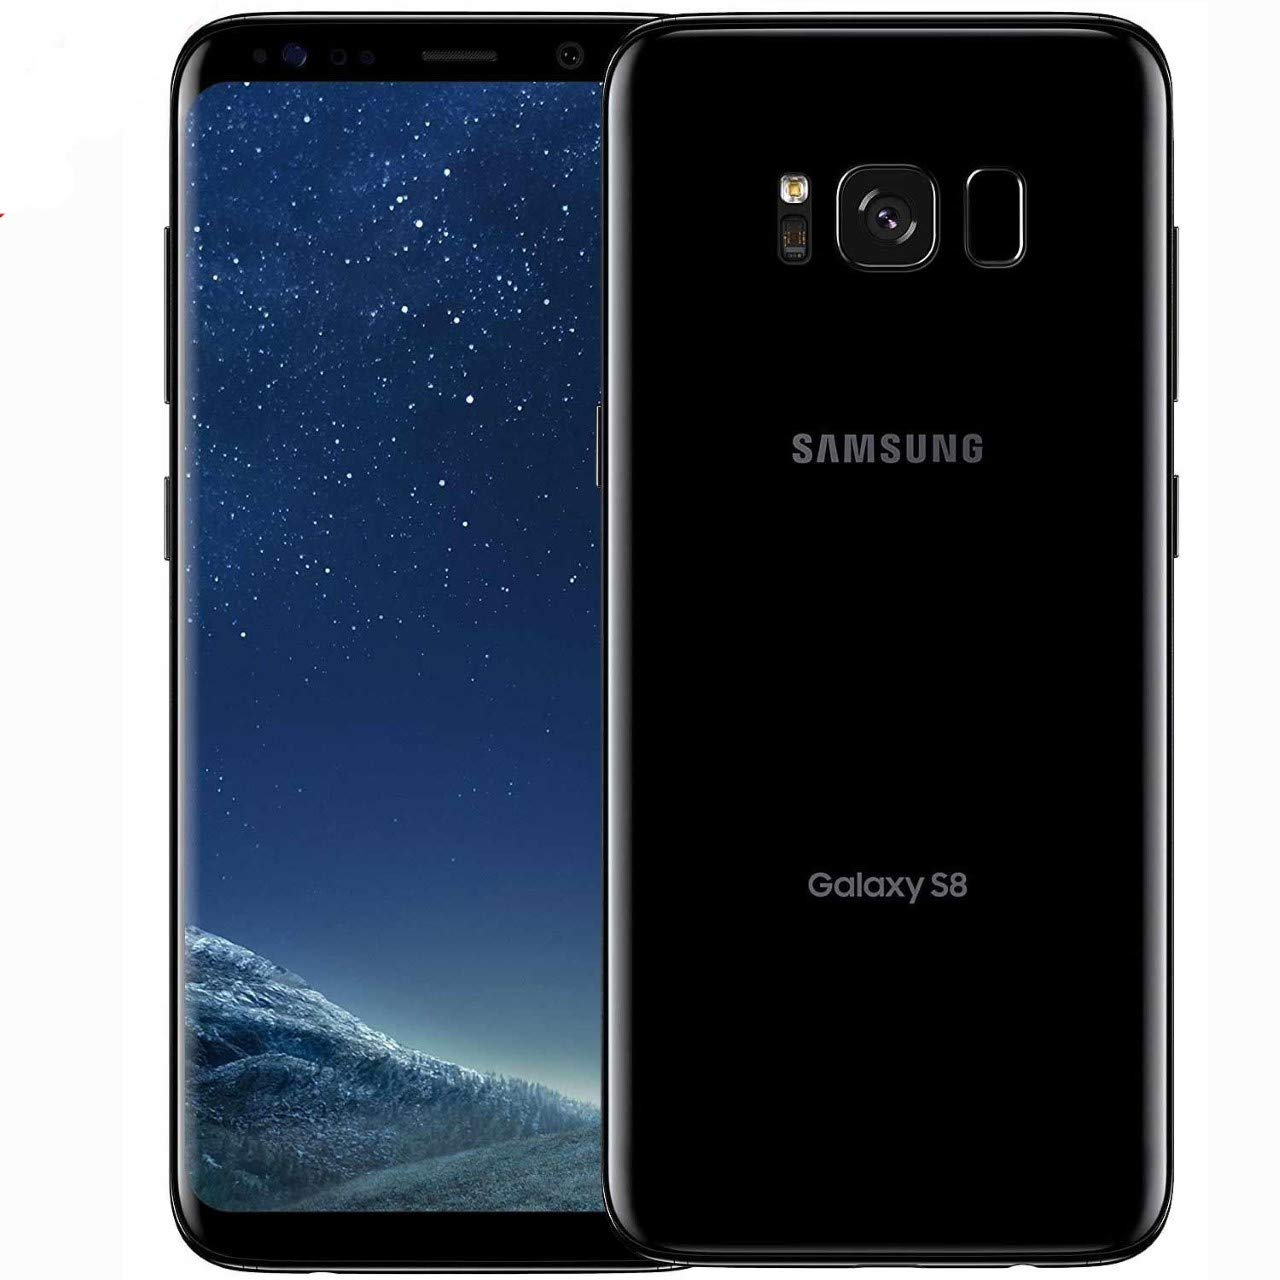 How a Samsung Galaxy S8 helped in saving divers' lives